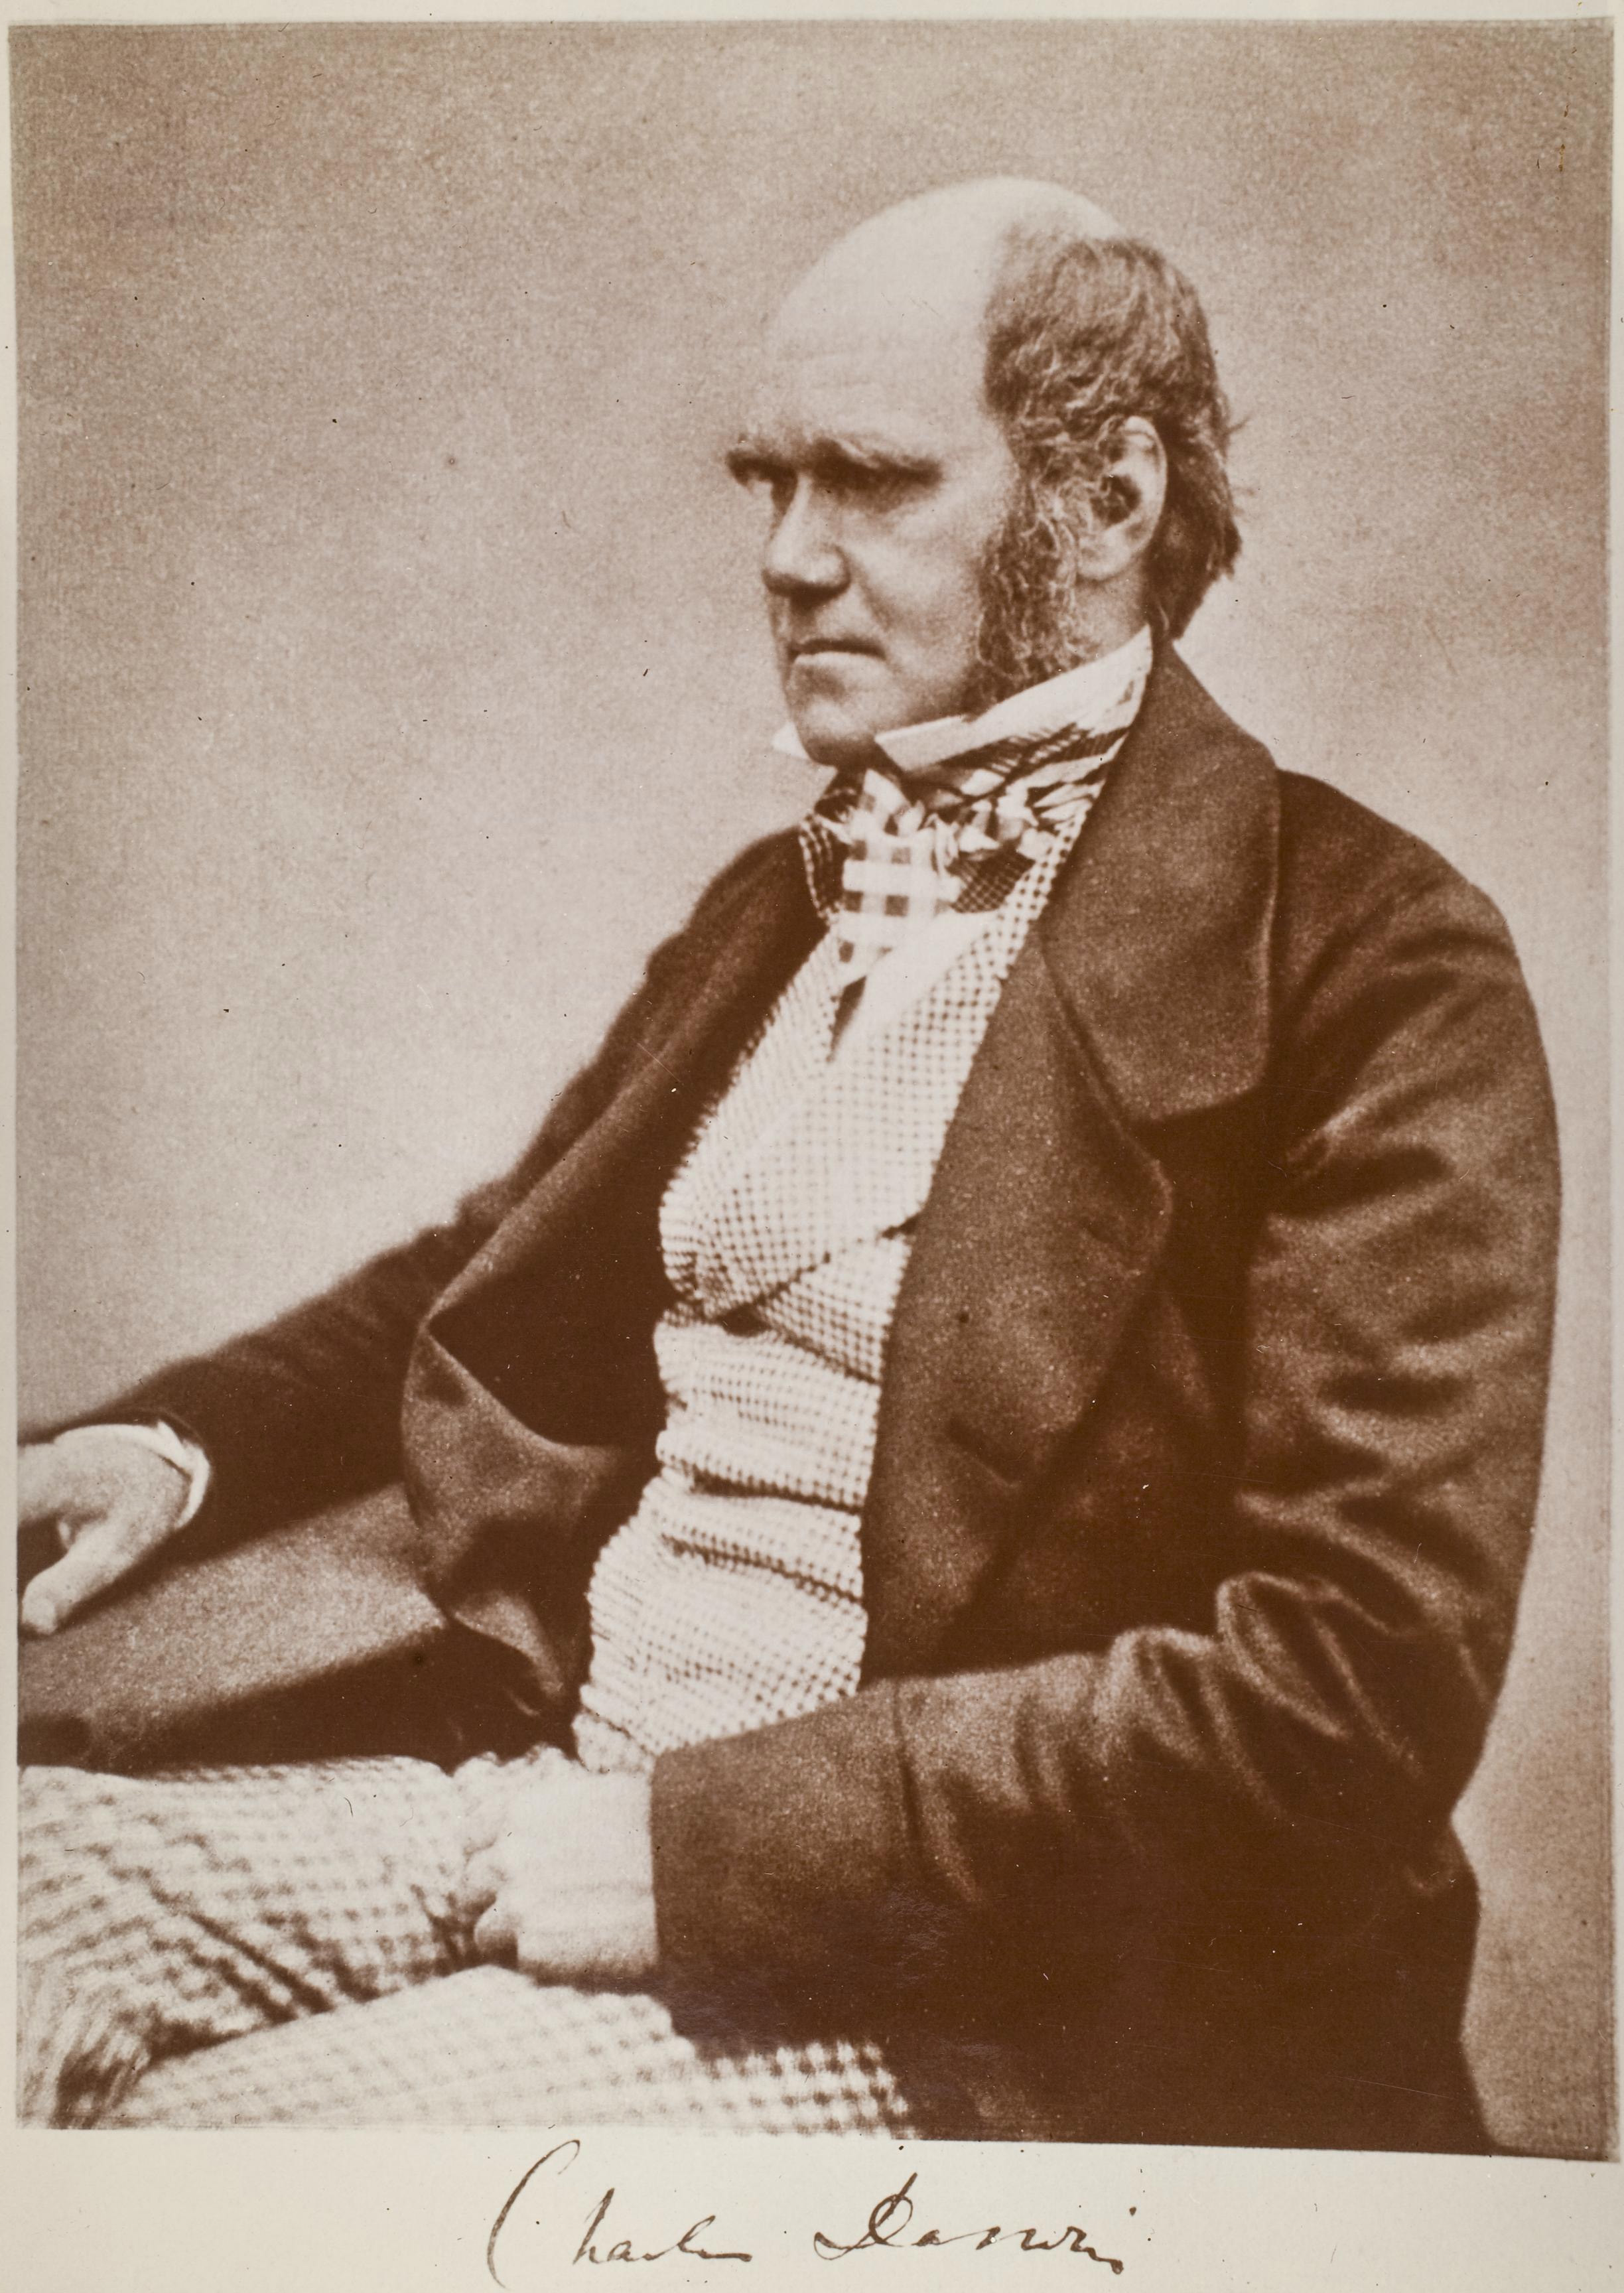 http://upload.wikimedia.org/wikipedia/commons/8/86/Charles_Darwin_seated.jpg